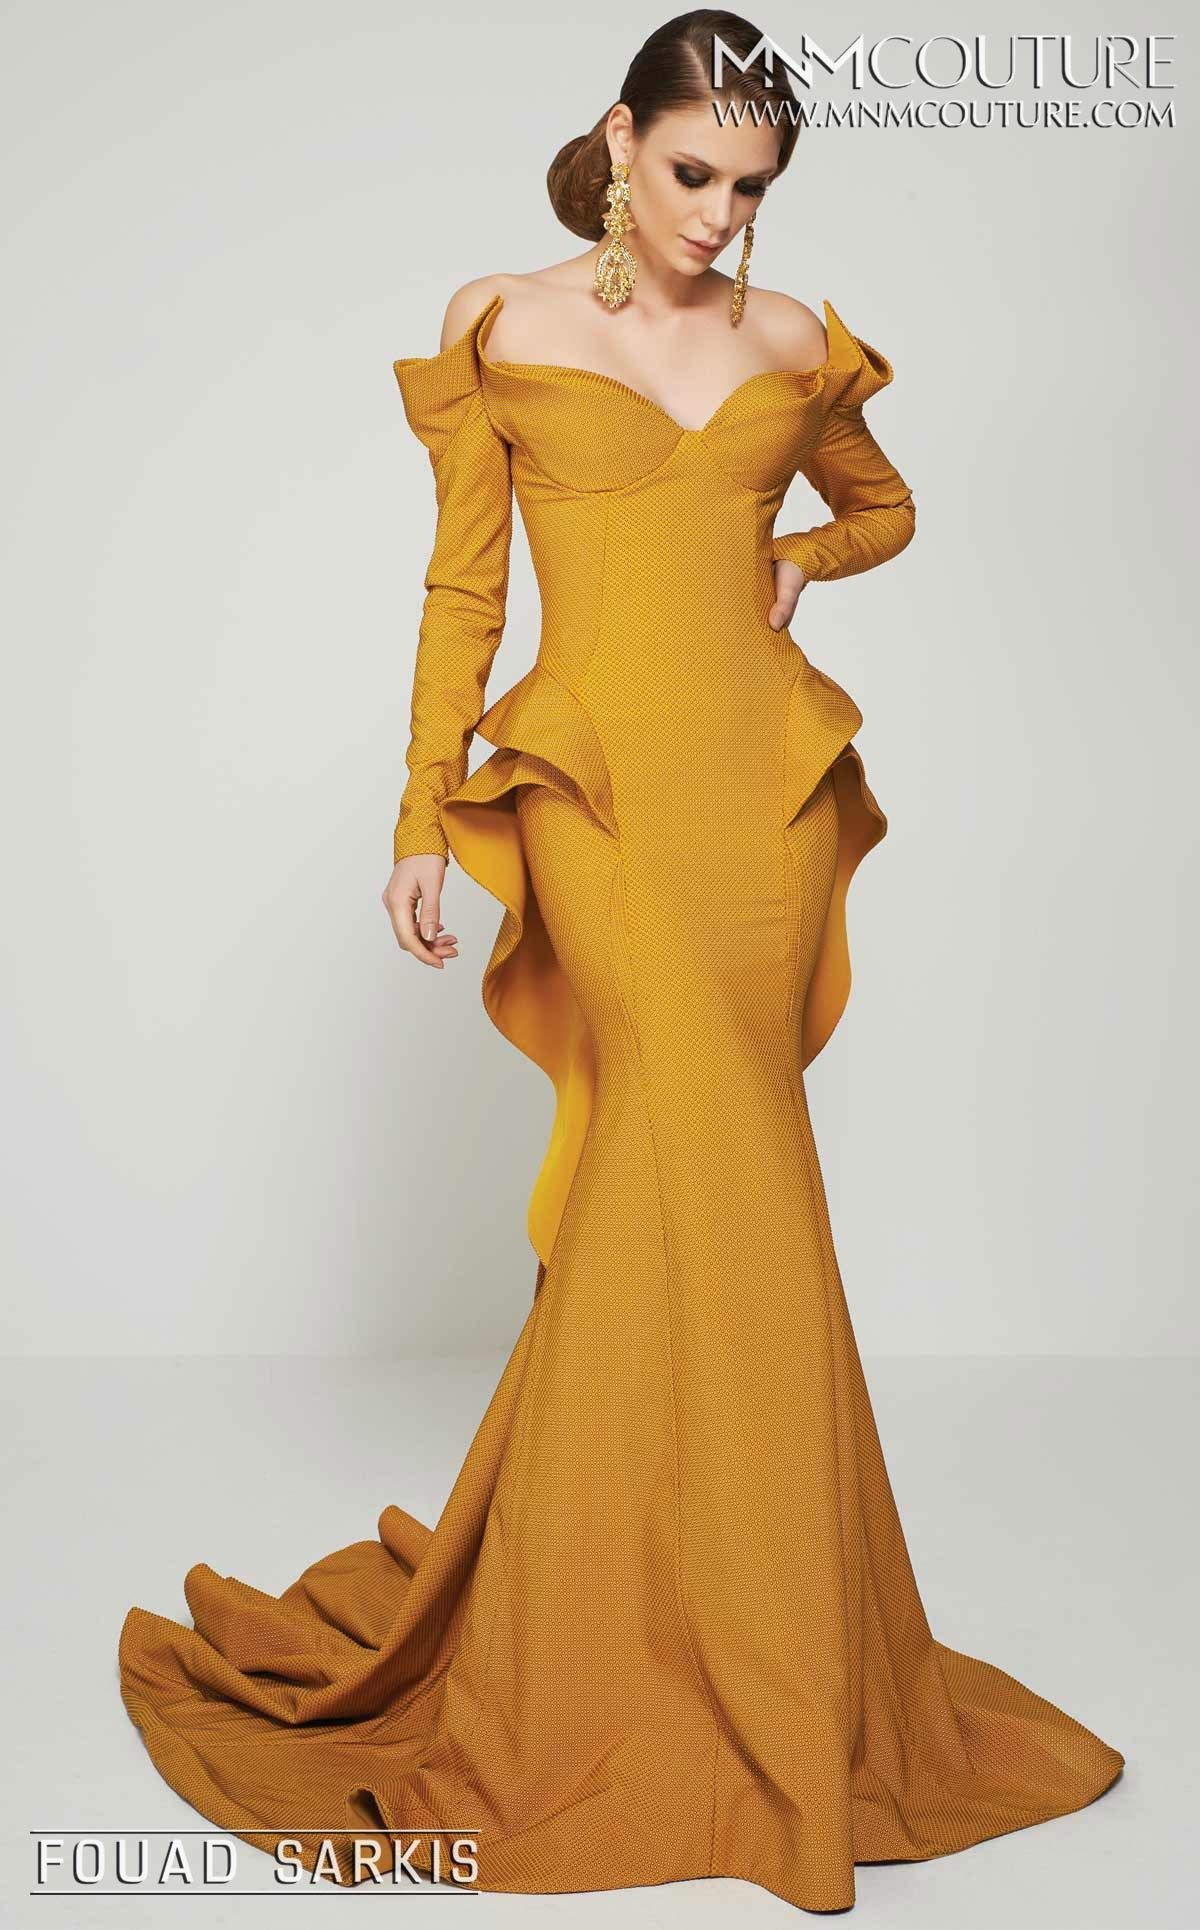 Fouad sarkis couture couture gowns and clothes